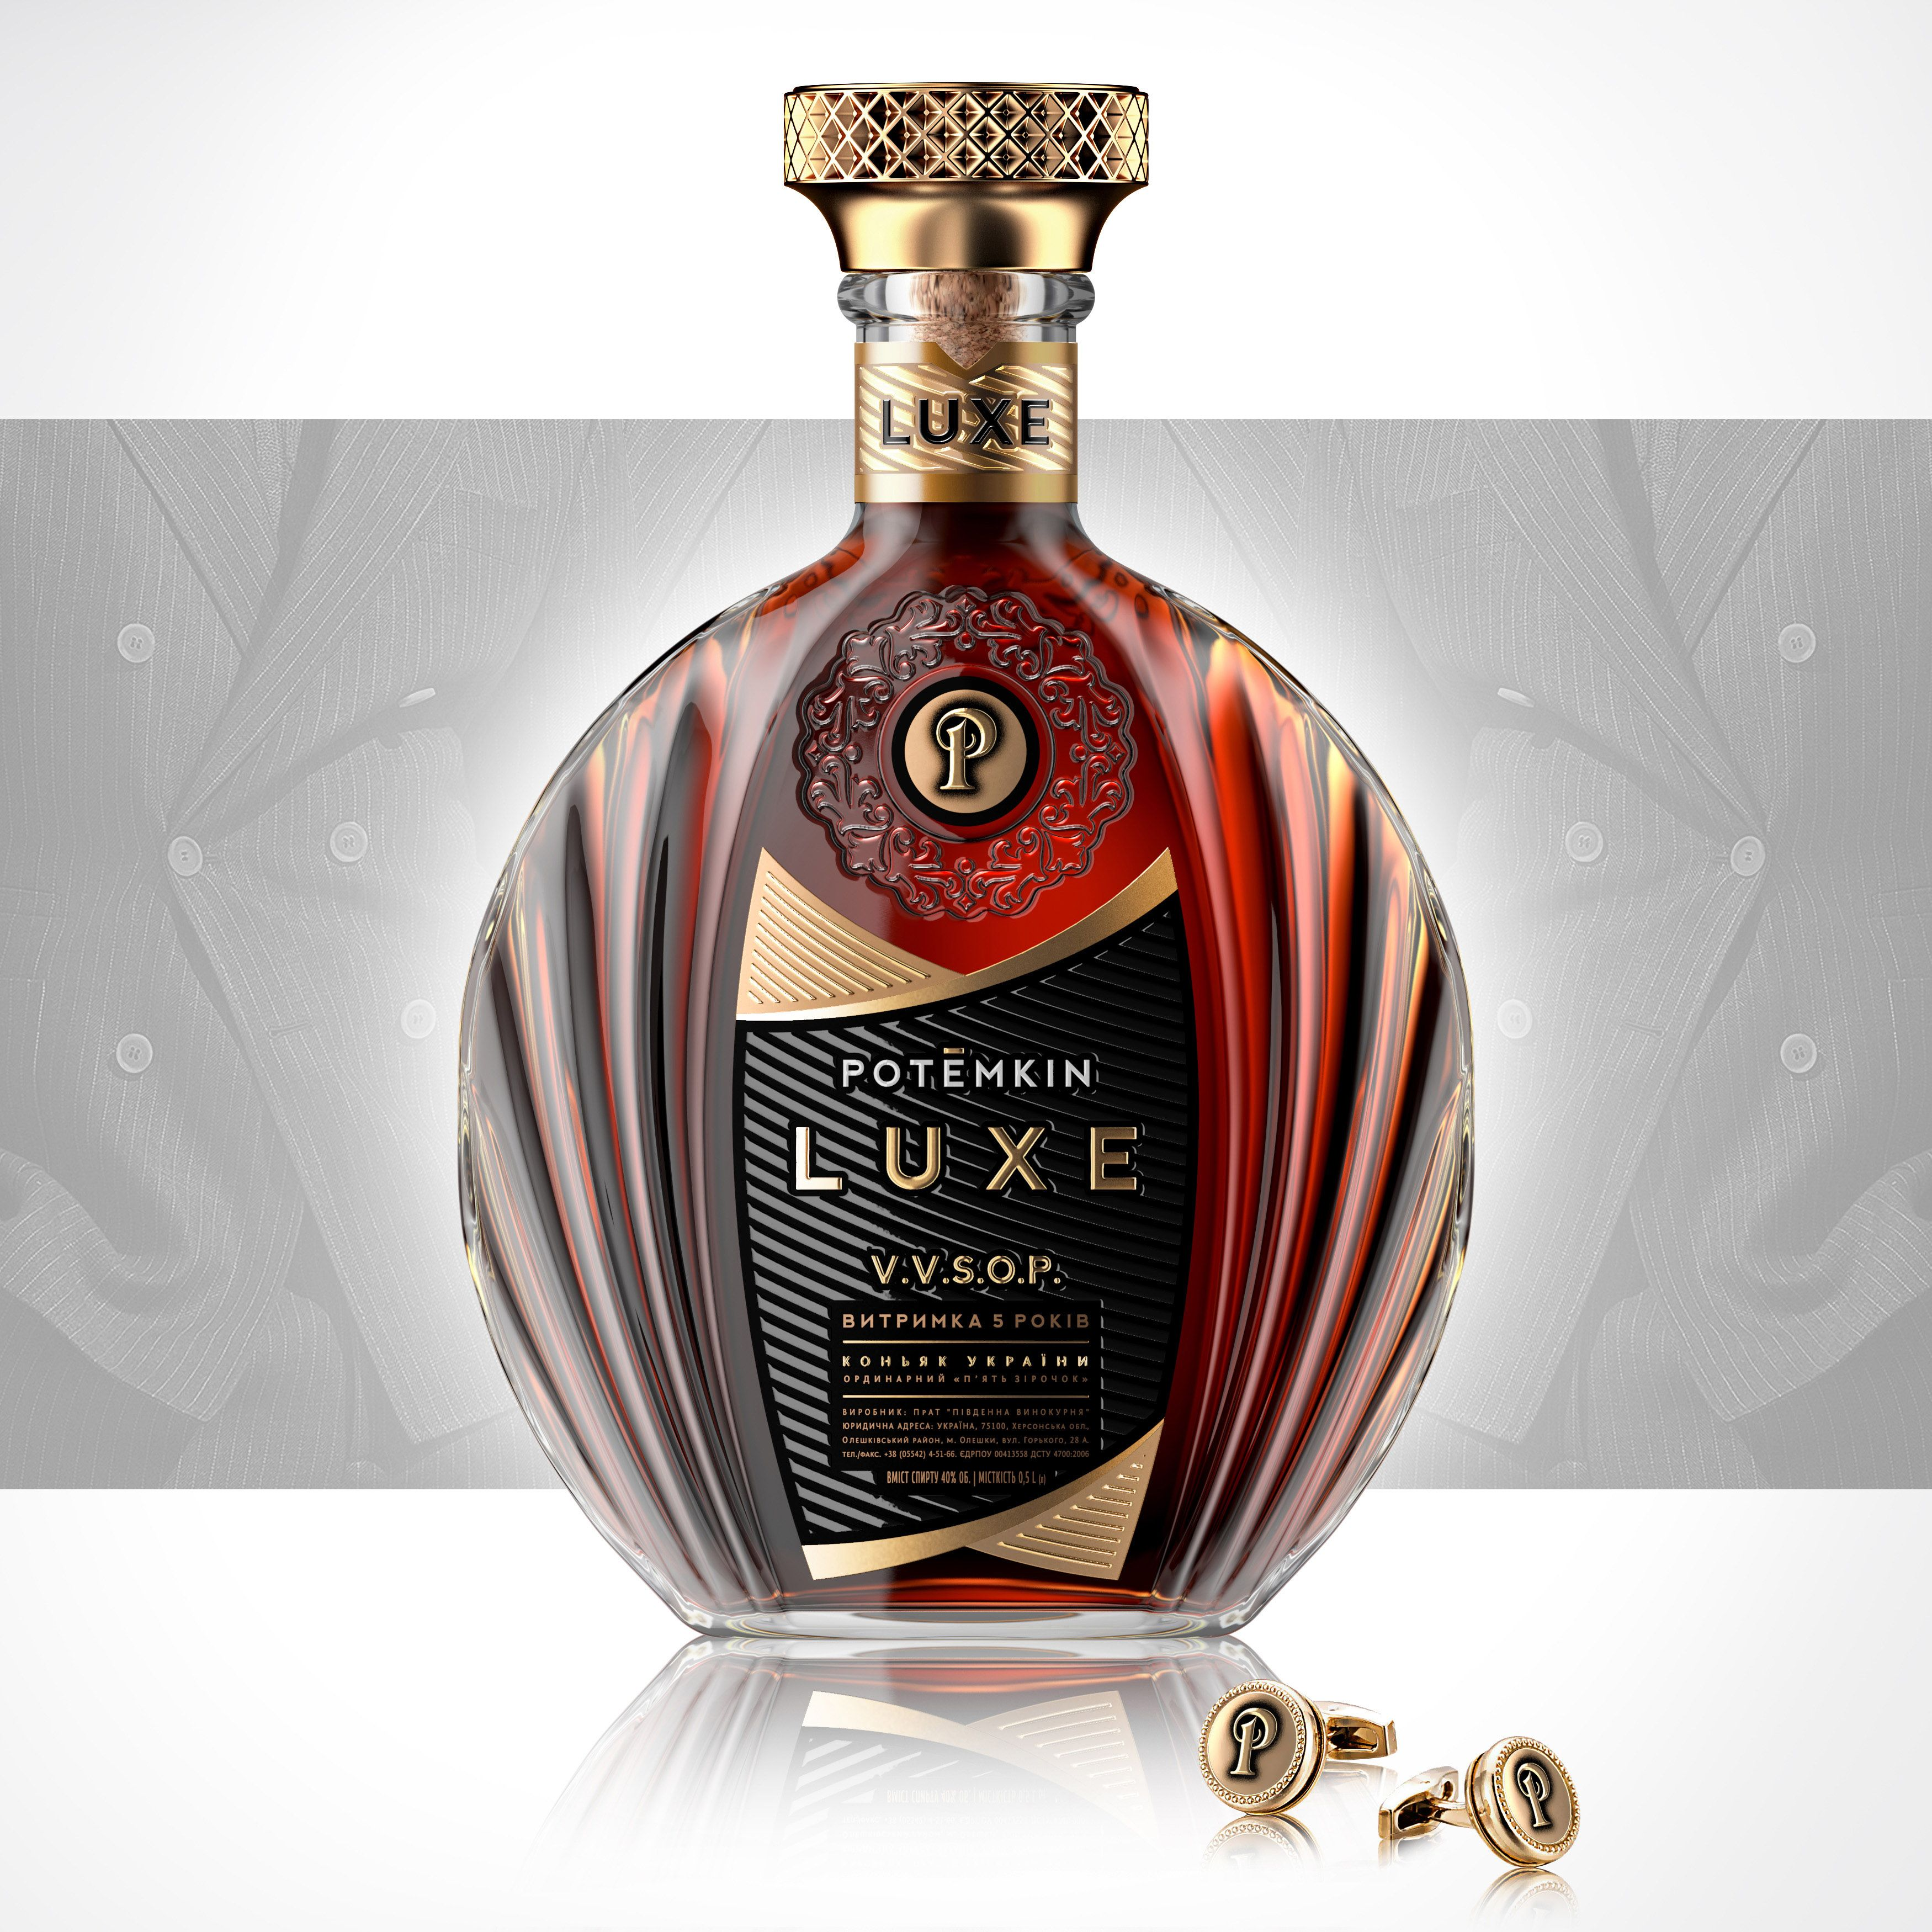 A Comprehensive Design Of The Potemkin Luxe Brandy In 2020 Bottle Label Design Bottle Design Wine Design